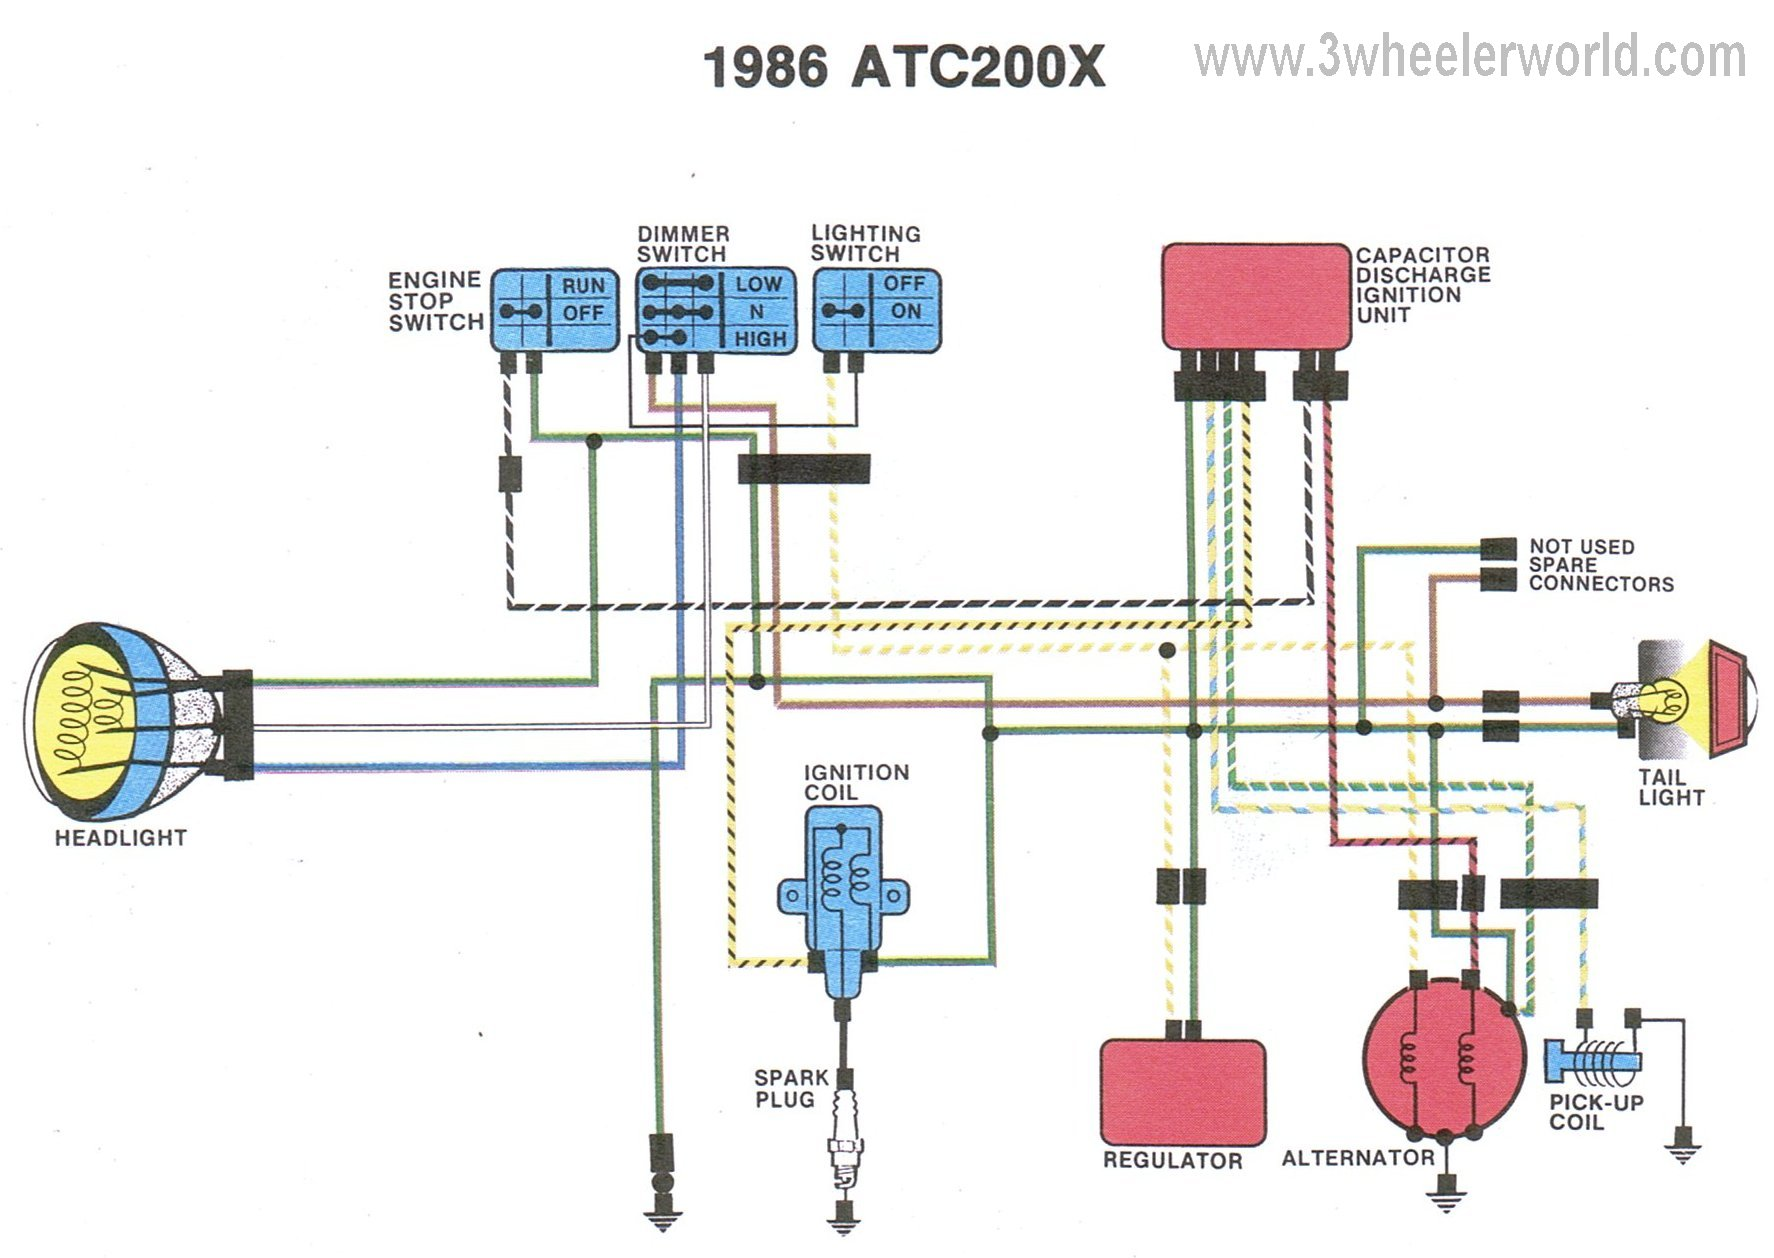 MTK40] 400 HONDA 40 WIRE DIAGRAM [NCBO]   WIRES COAST   WIRES ...